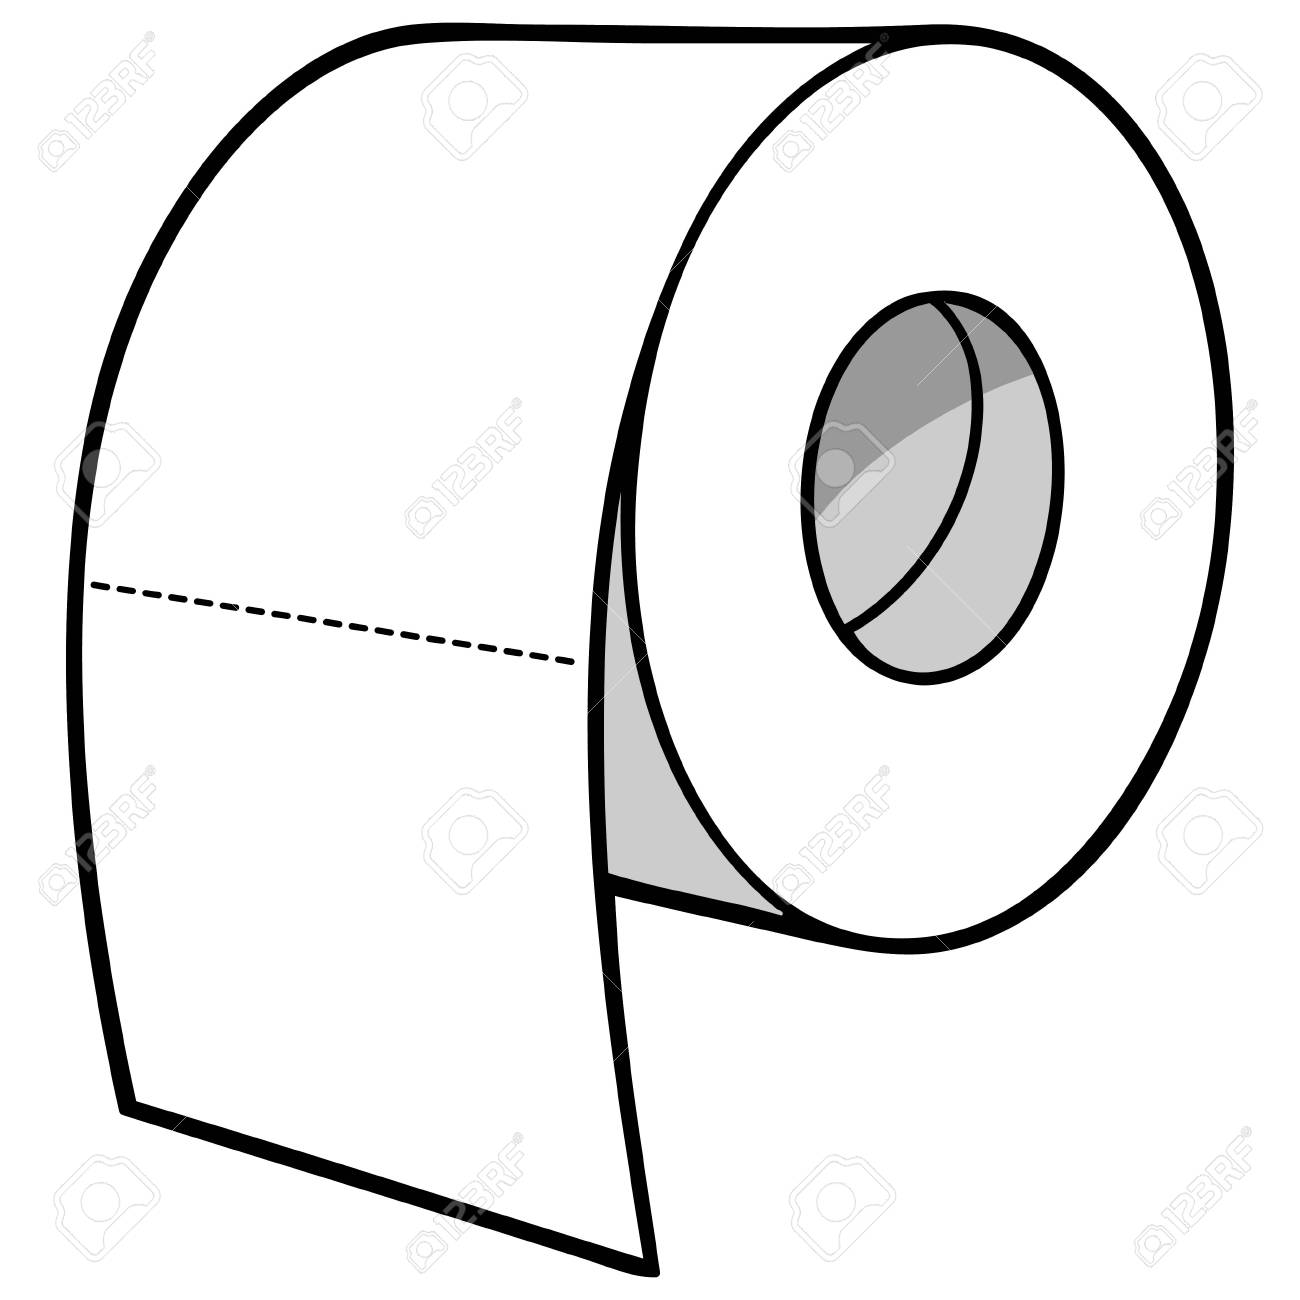 toilet paper illustration royalty free cliparts vectors and stock rh 123rf com toilet paper clipart free toilet paper roll clipart